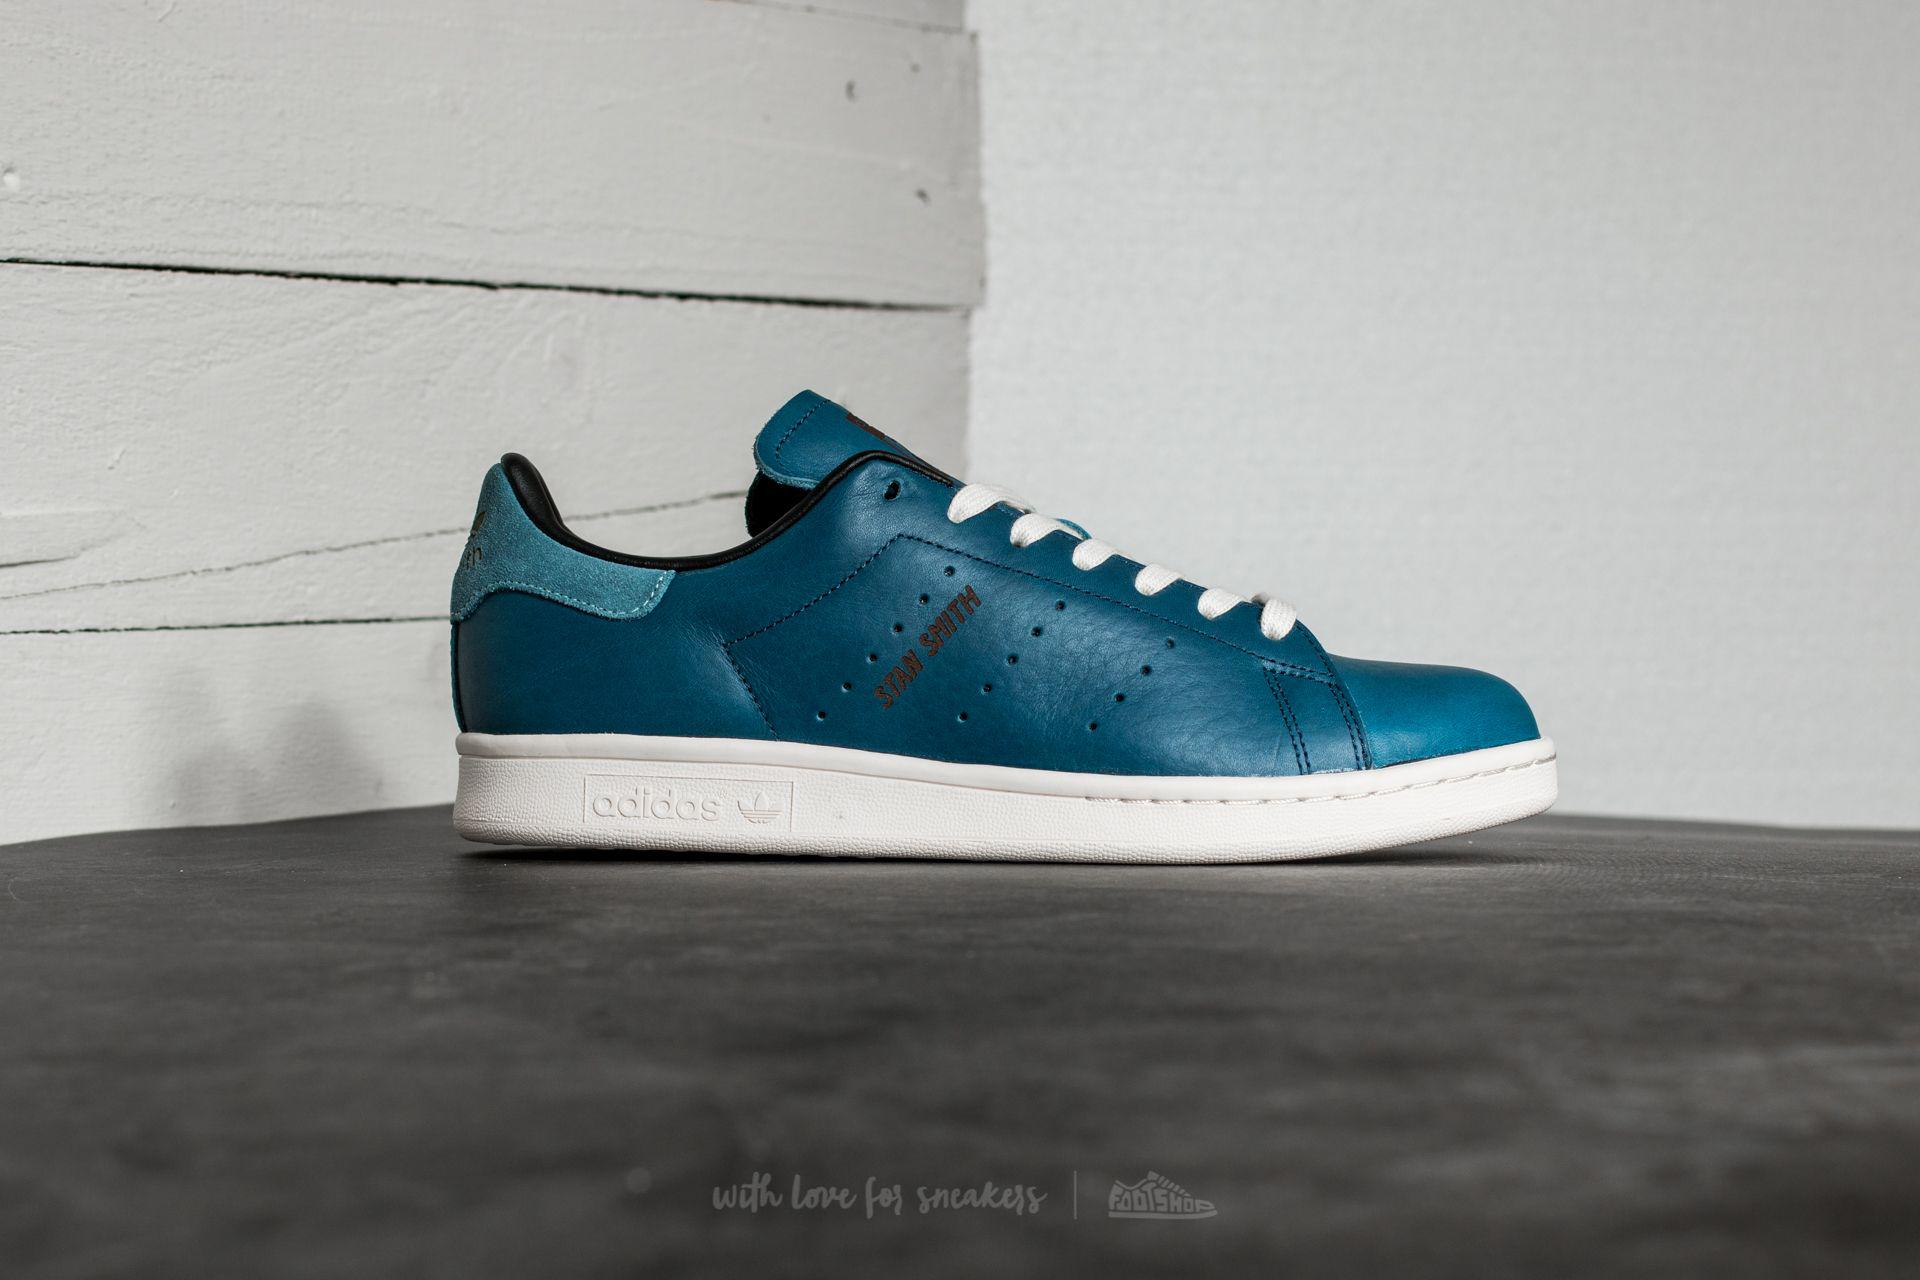 5c9392846de8 ... white navy tennis mens sneakers 56e8b d0f93 sale gallery. previously  sold at footshop mens adidas stan smith mens nike fc4e8 c13c5 ...